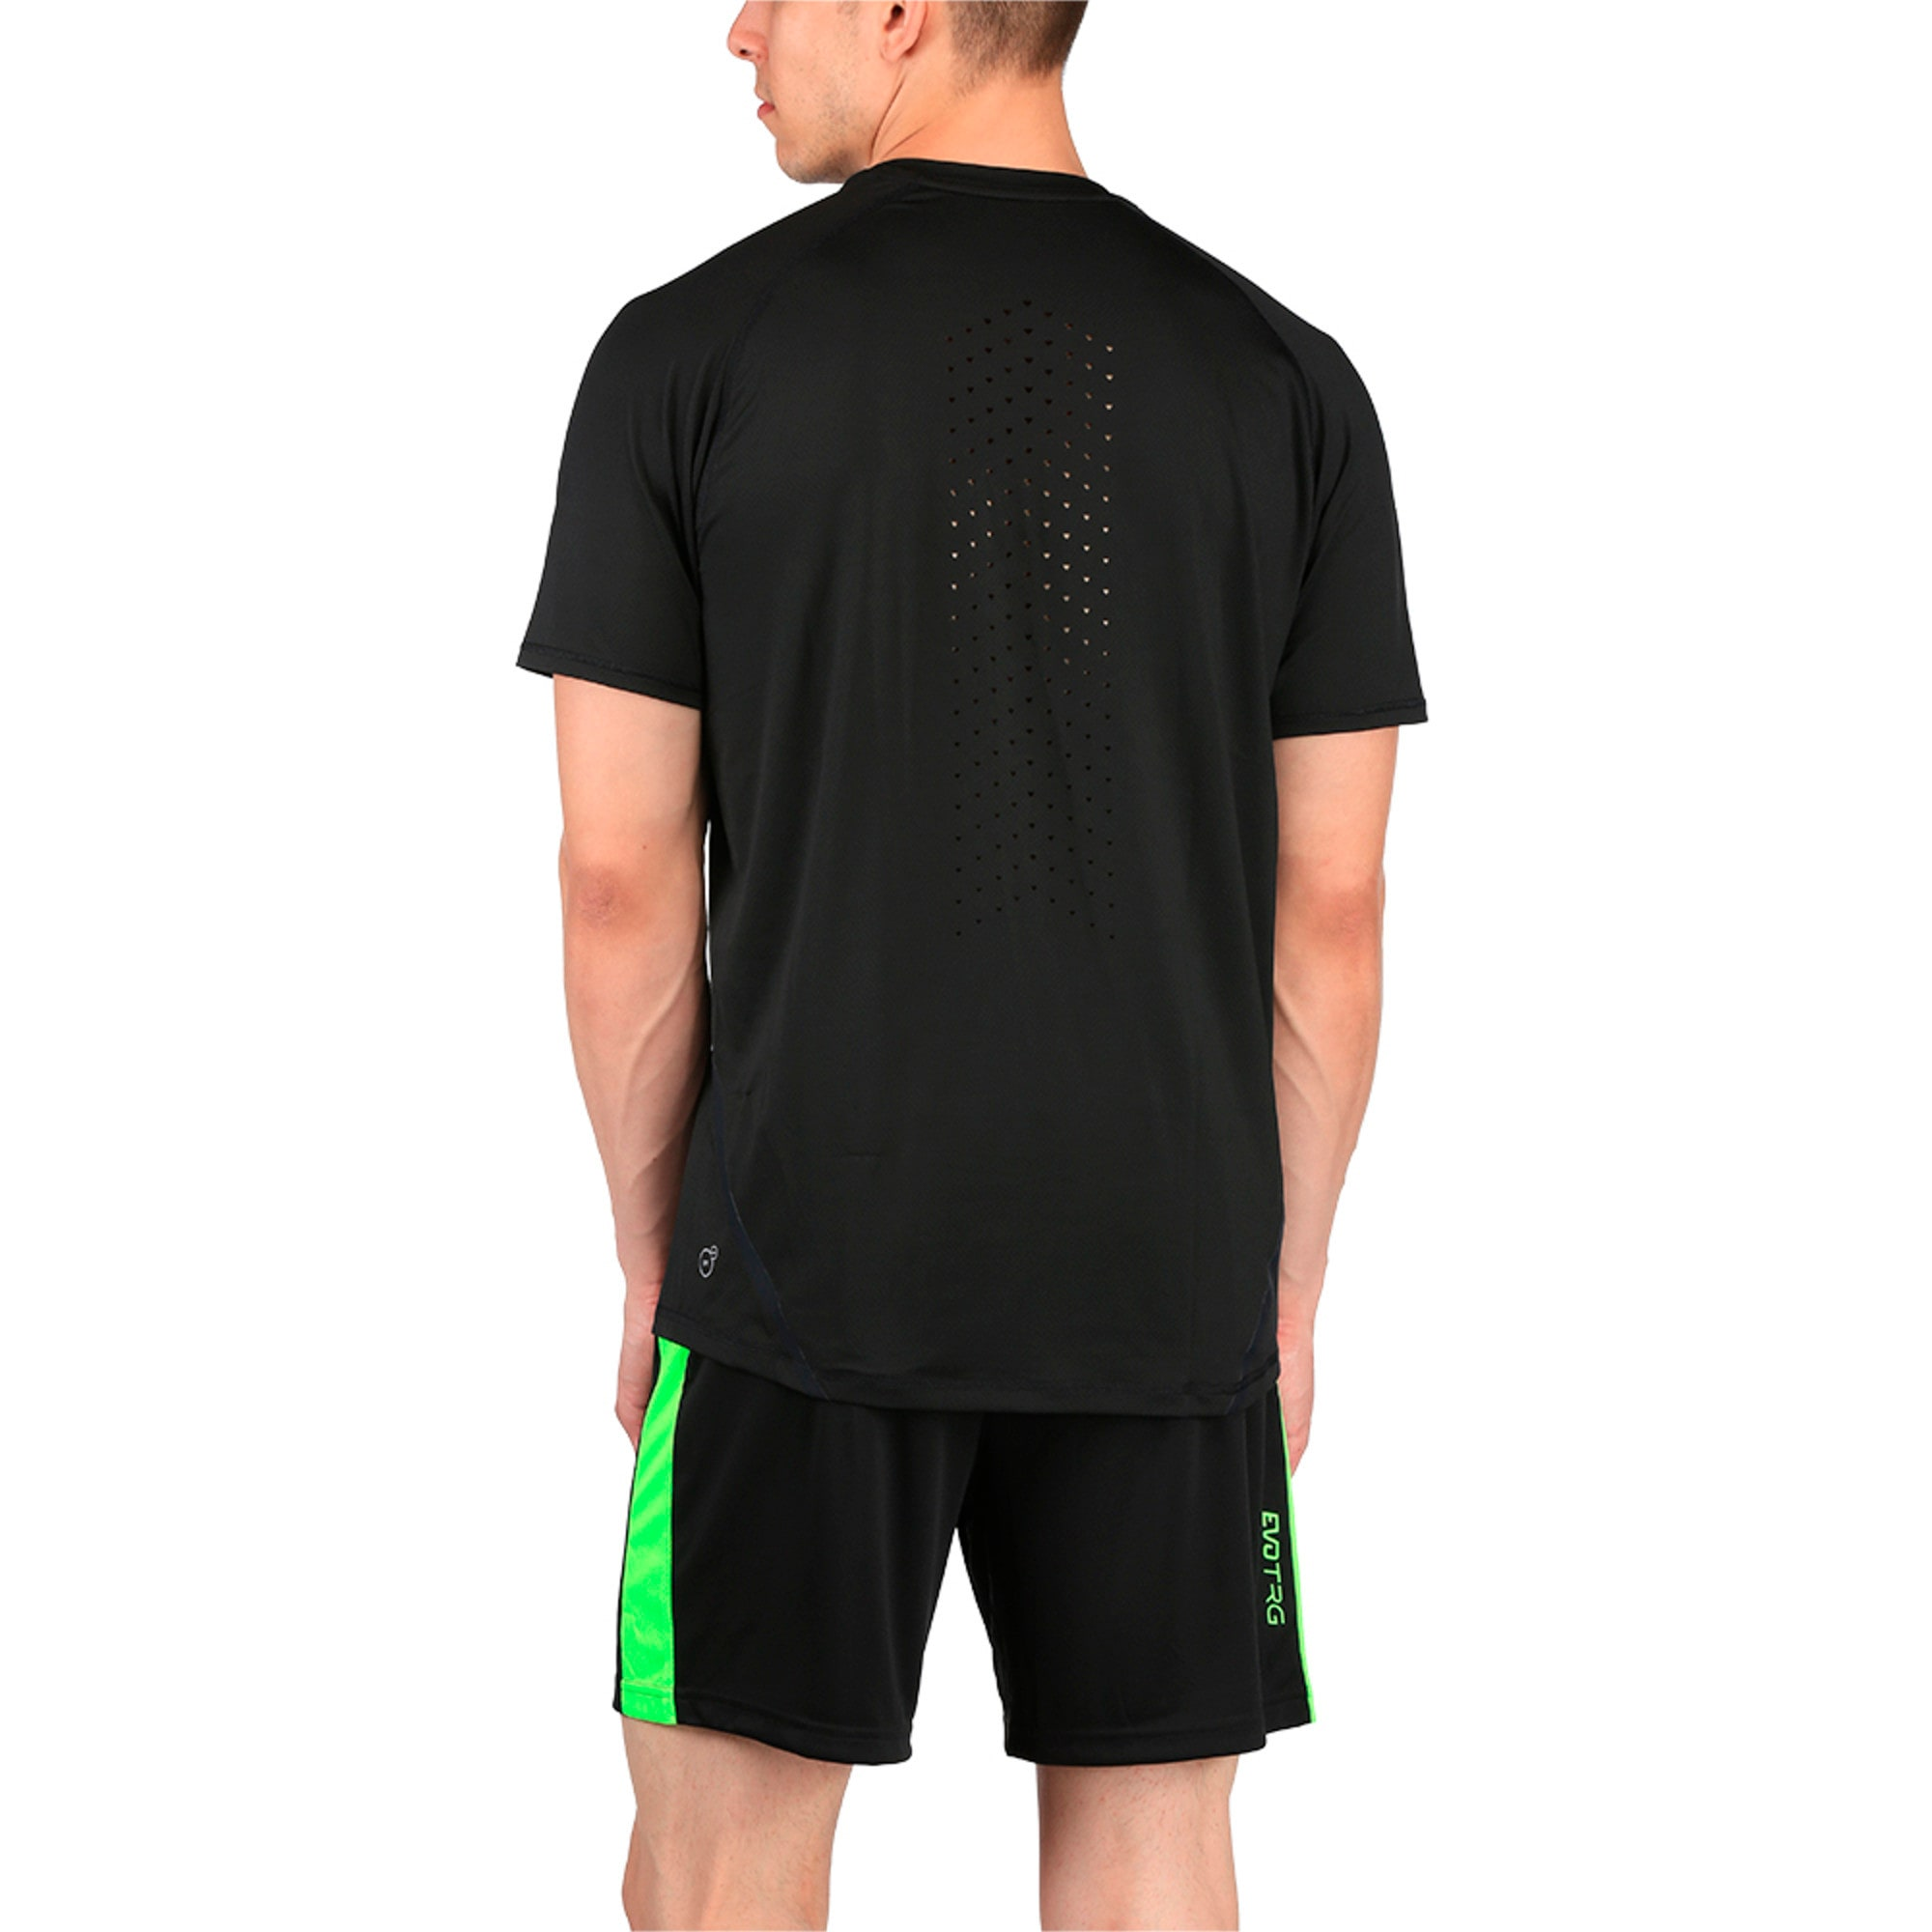 Thumbnail 3 of Active Training Men's Power T-Shirt, Puma Black, medium-IND